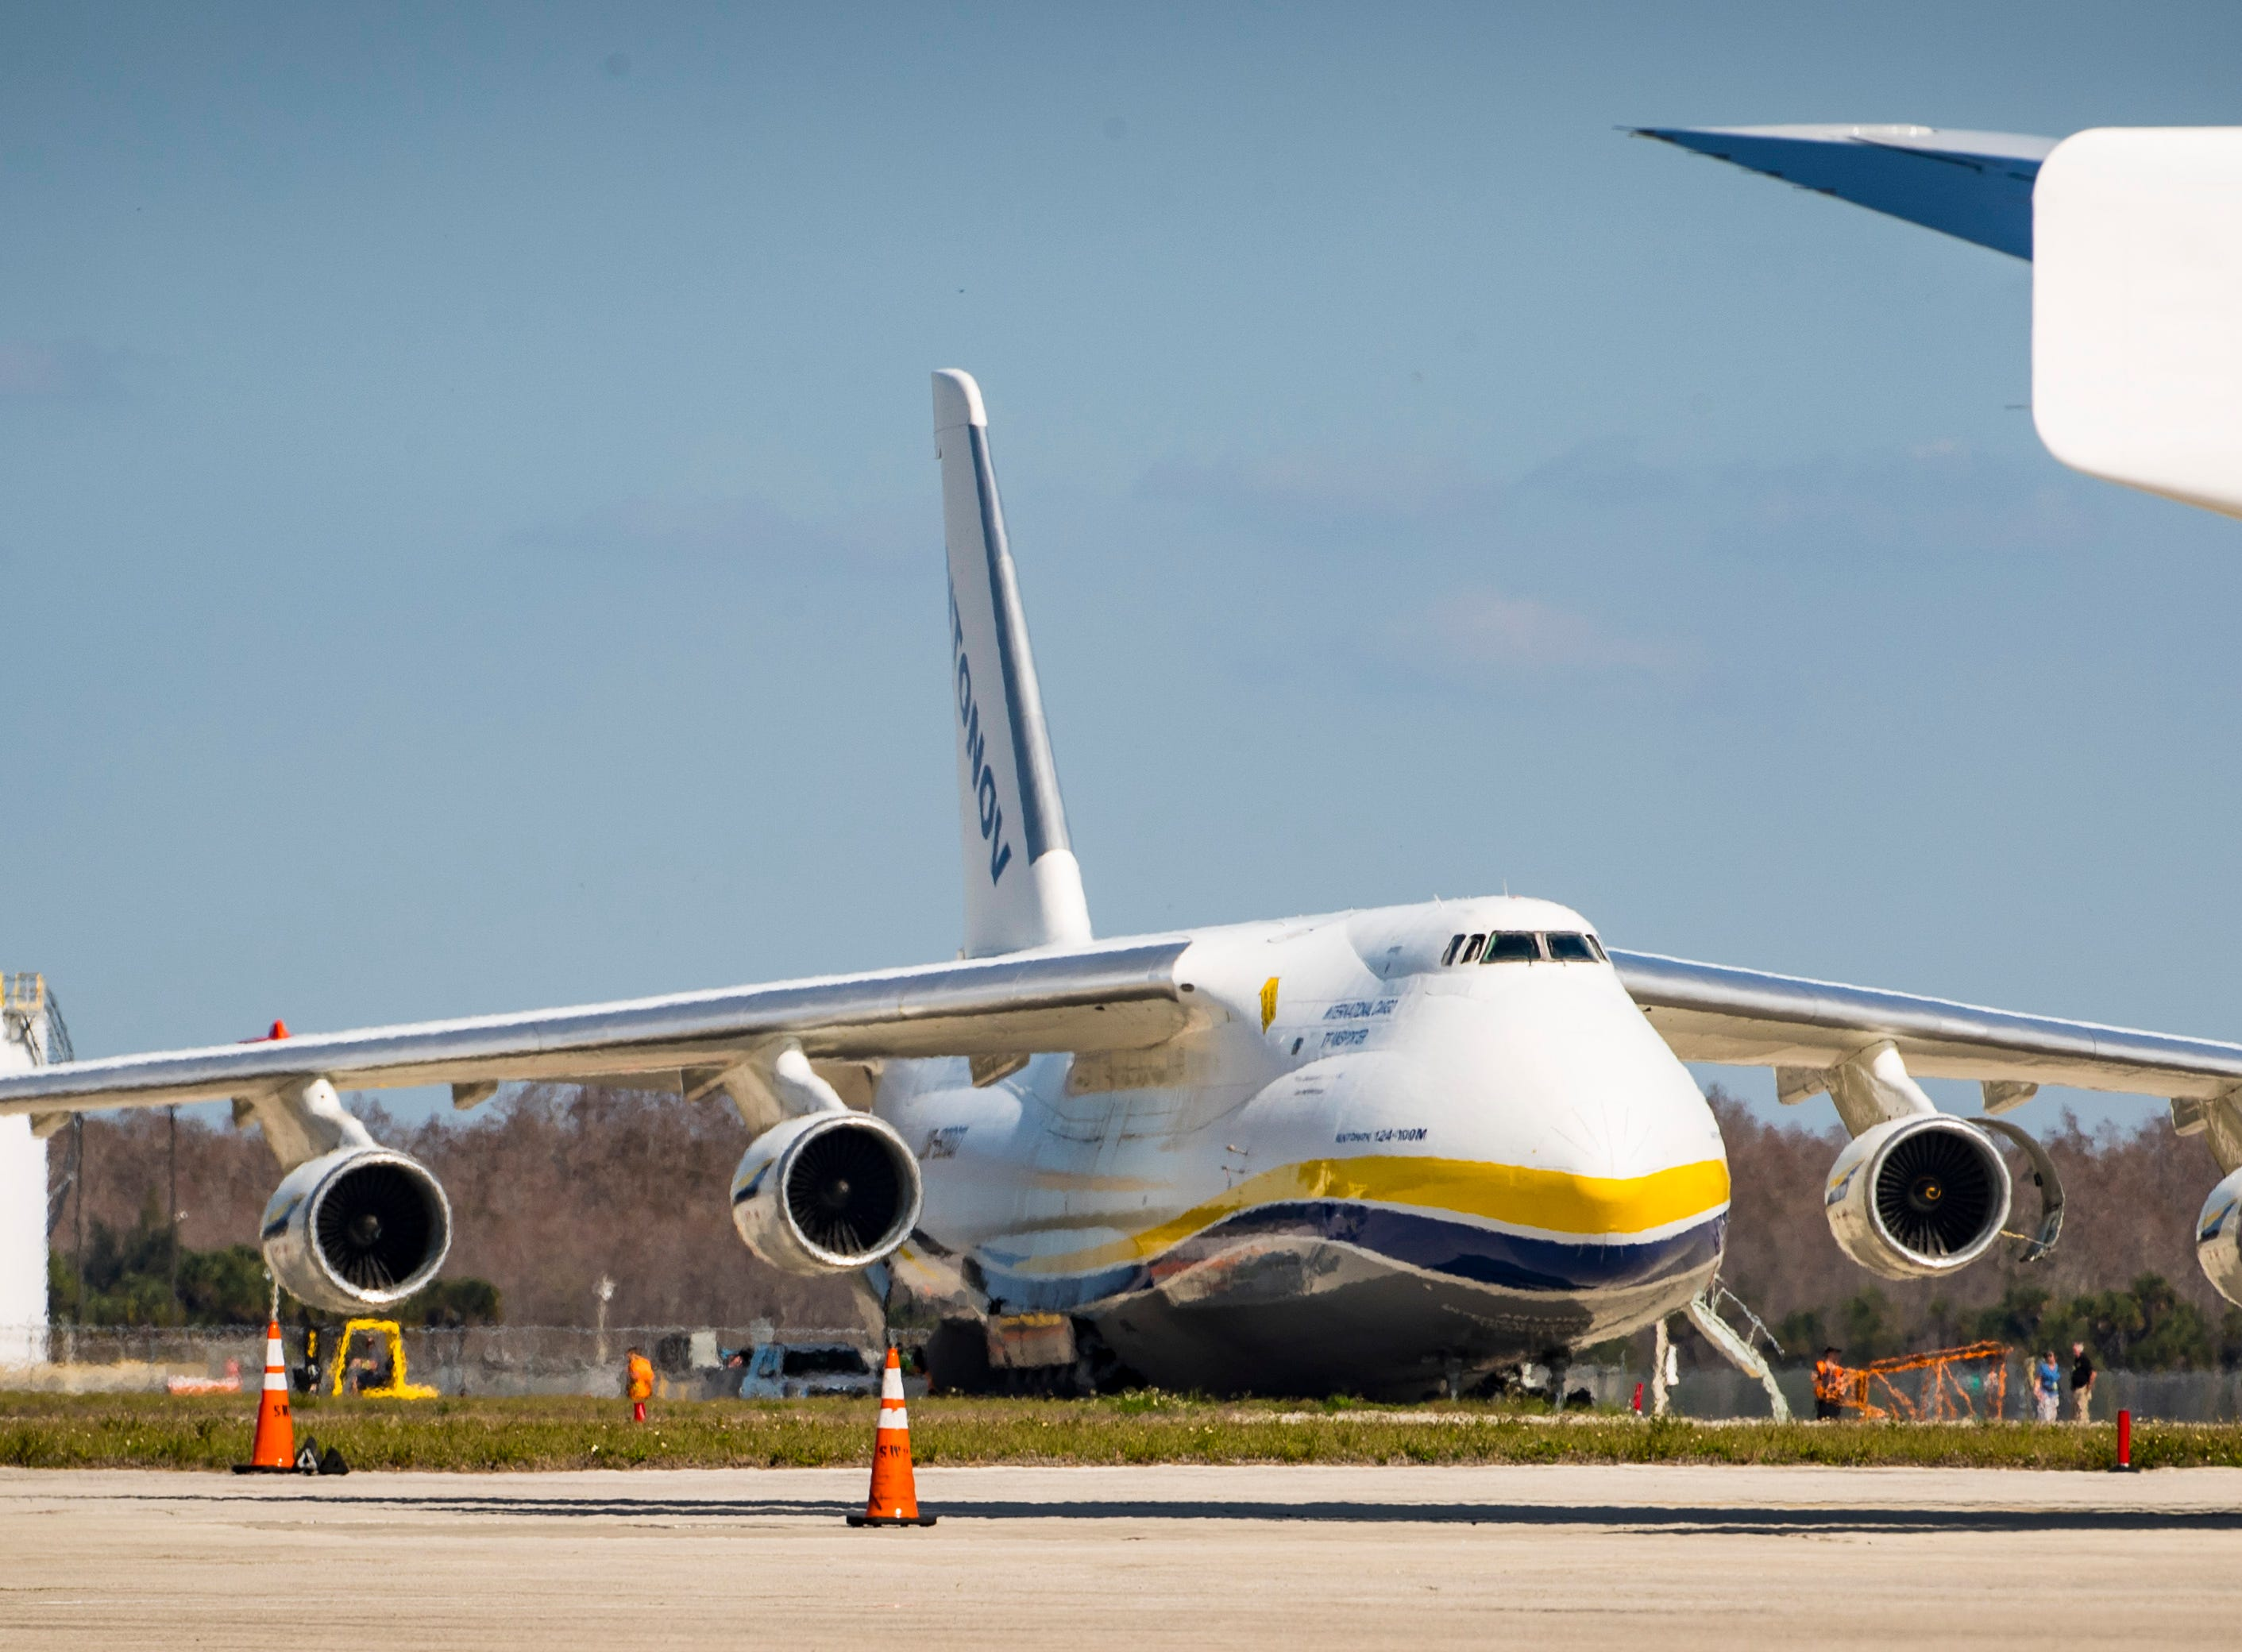 Southwest Florida got the chance to observe one of the largest aircraft in the world, the Antonov An-124, land and unload cargo at Southwest Florida International Airport in Fort Myers, FL, Tuesday, February 5, 2019.